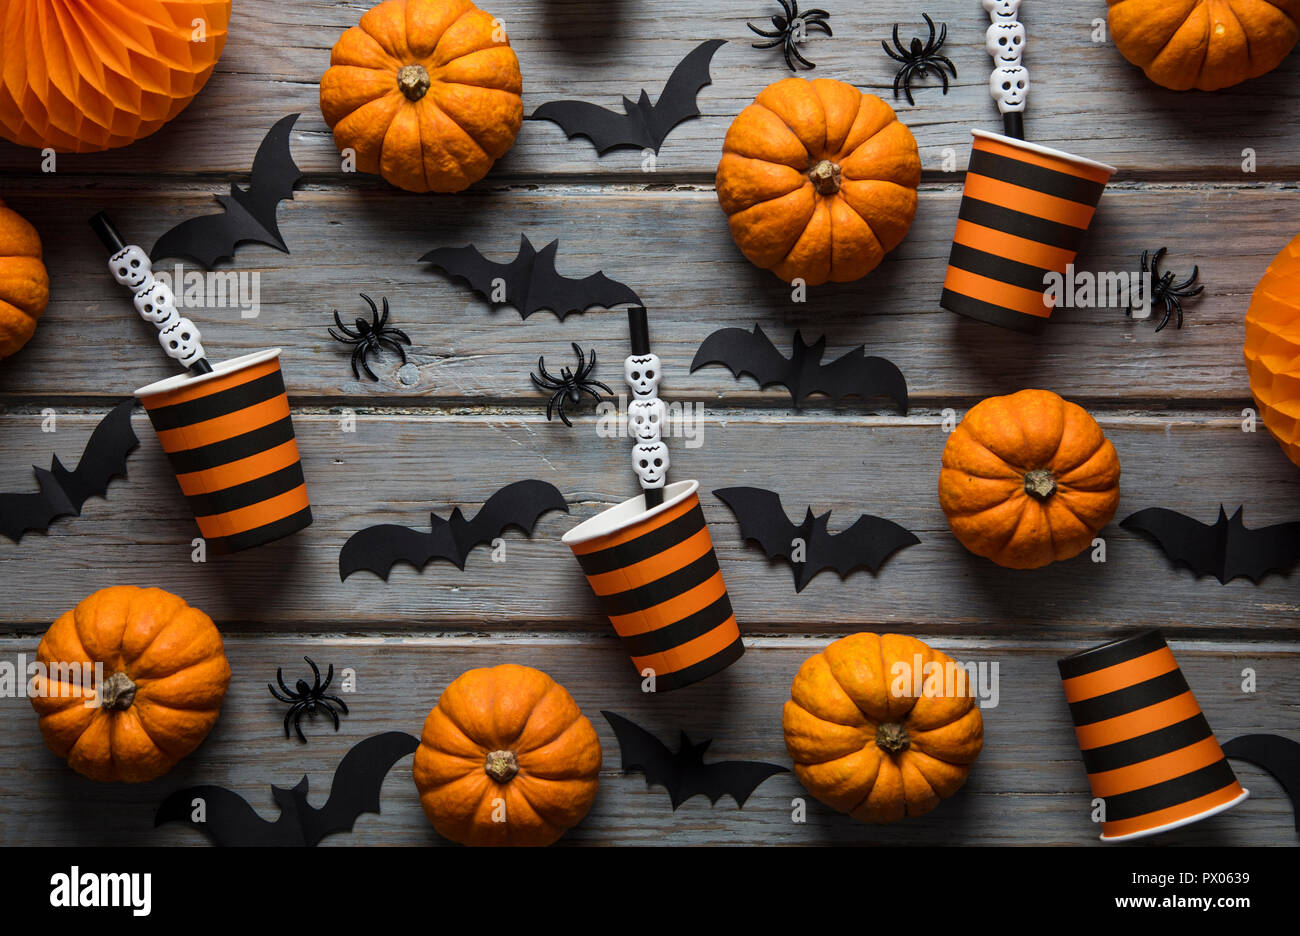 Halloween Party Decorations On A Rustic Wooden Background